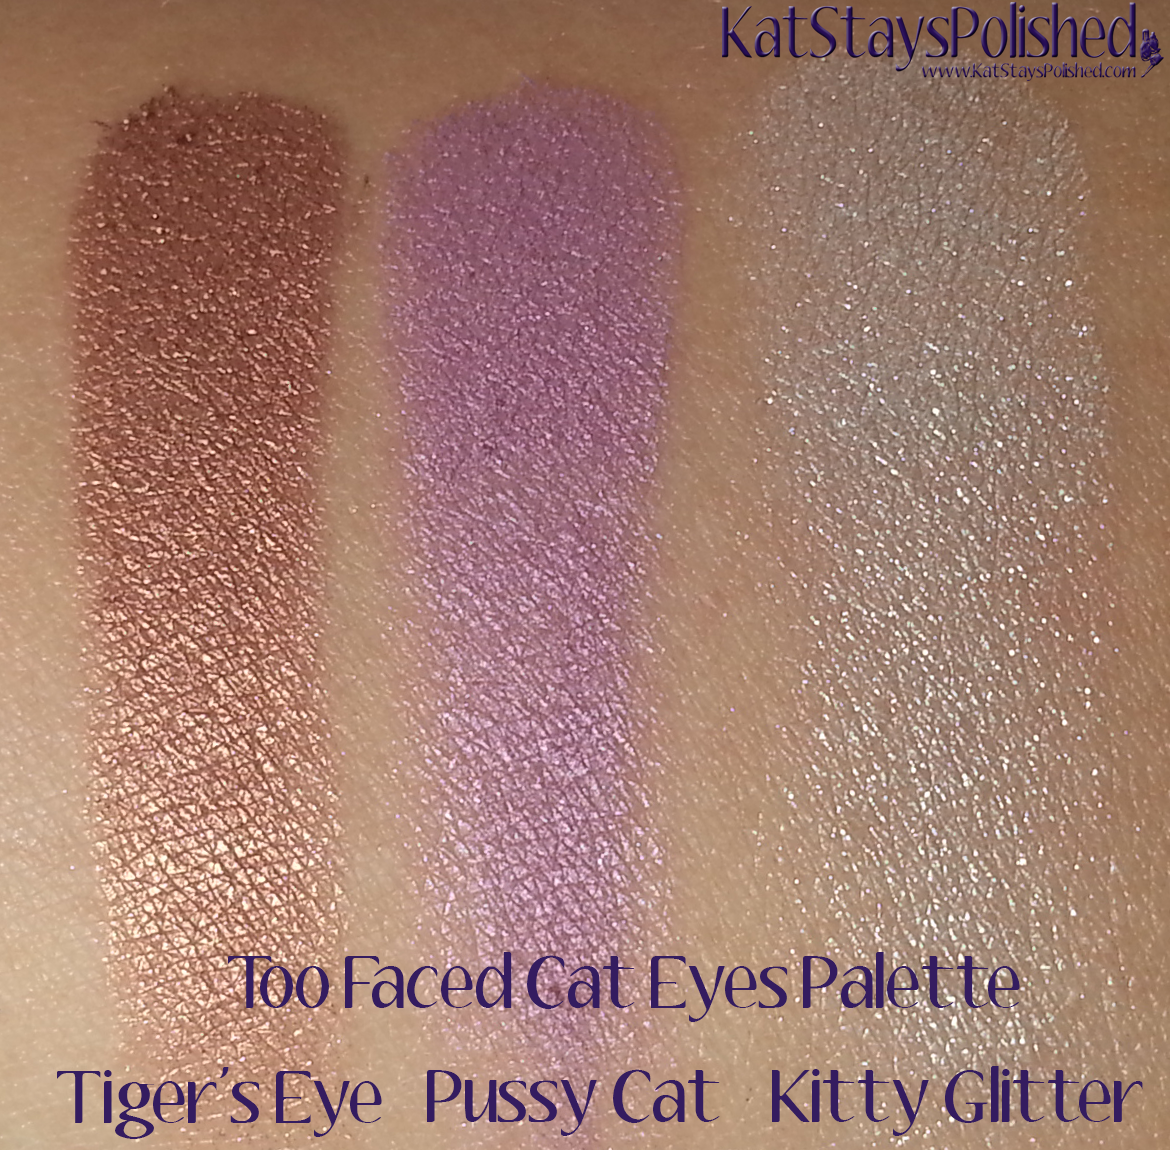 Too Faced Cat Eyes Palette - Tiger's Eye, Pussy Cat, Kitty Glitter | Kat Stays Polished